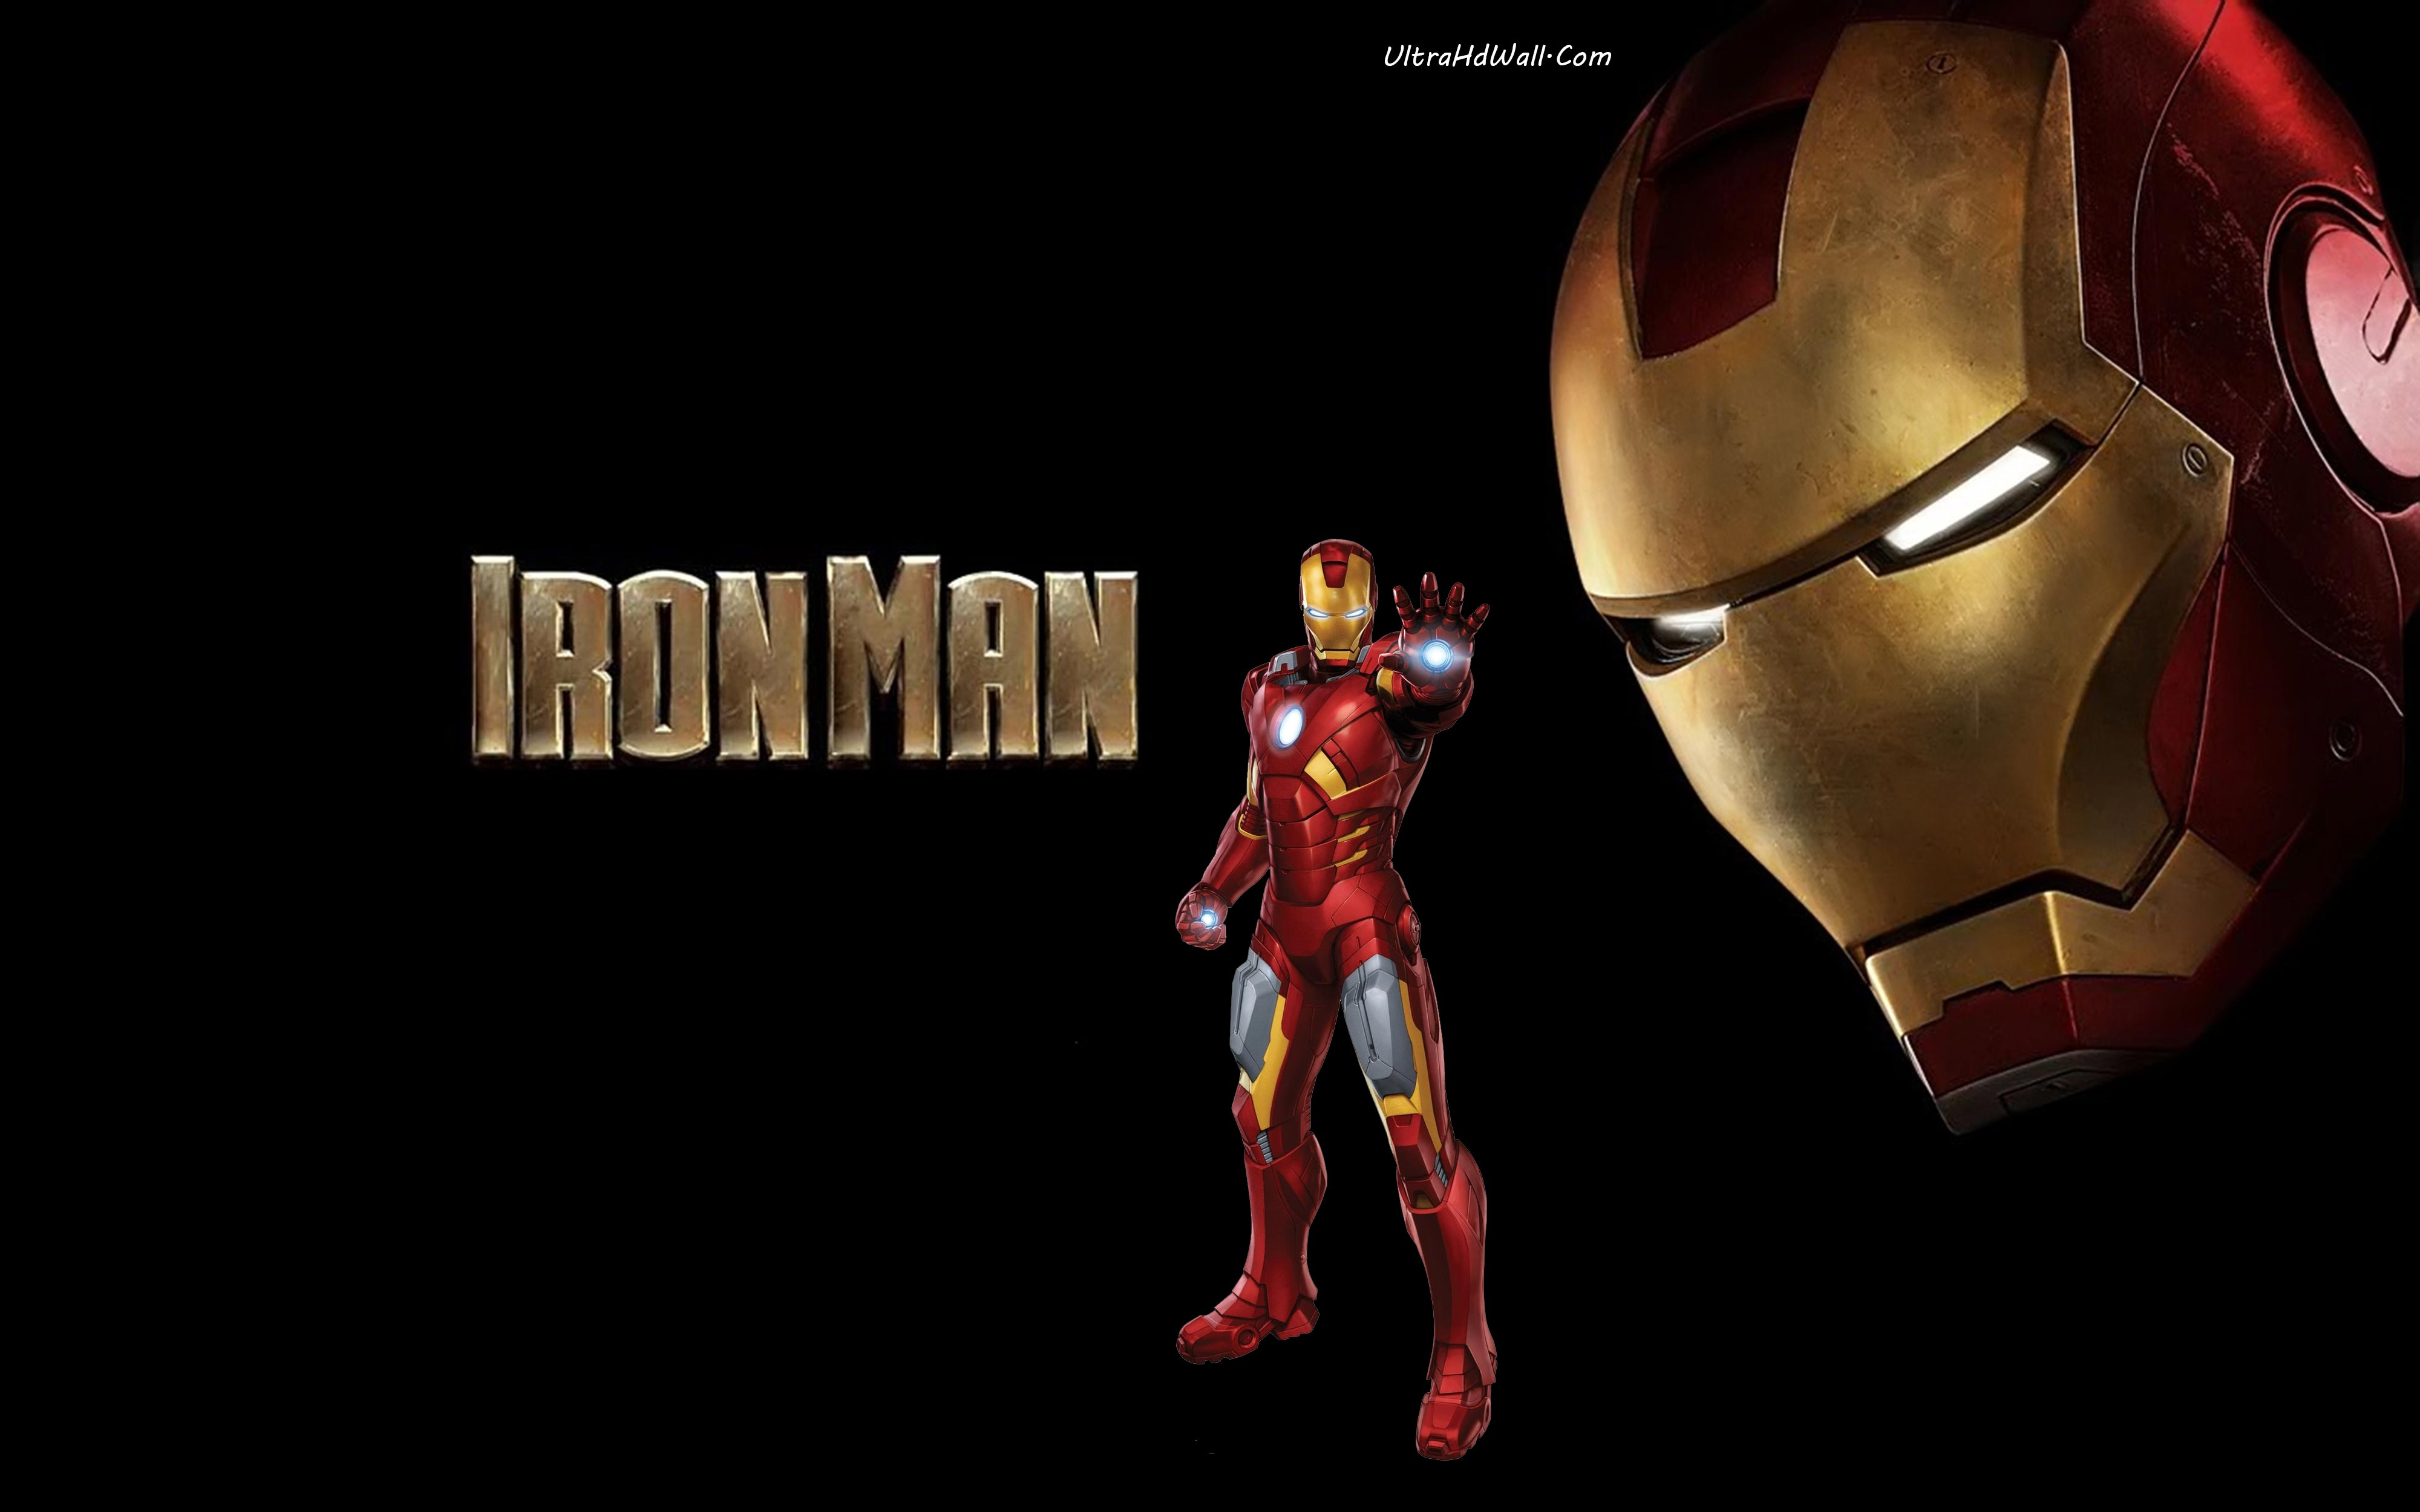 Free download Iron Man Wallpaper [4000x2500] for your